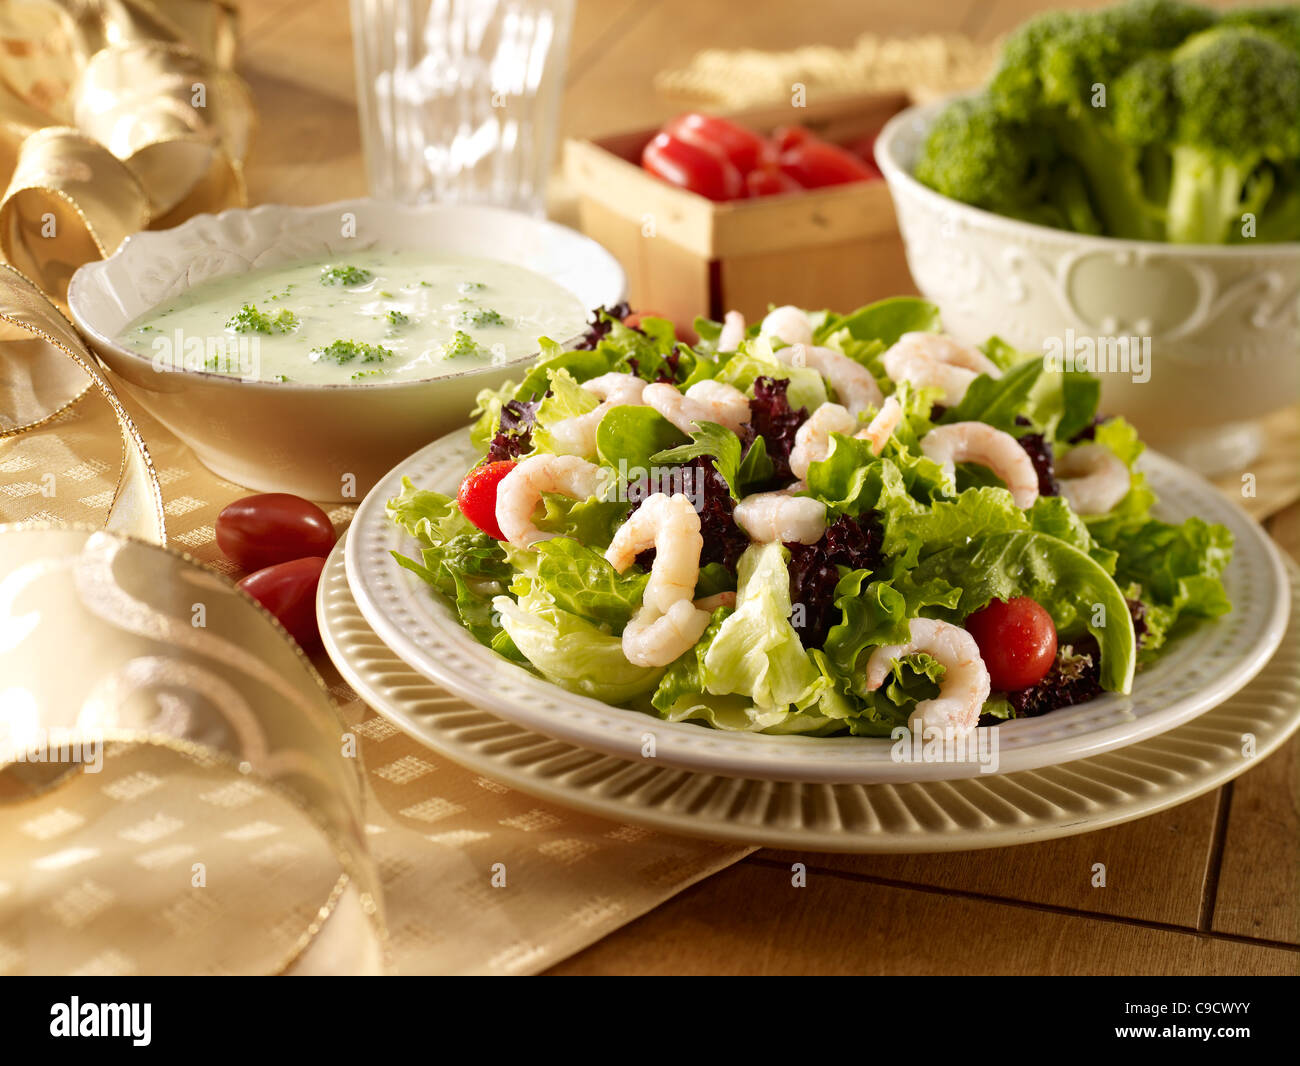 A shrimp salad and a bowl of broccoli soup in a life style holiday setting - Stock Image